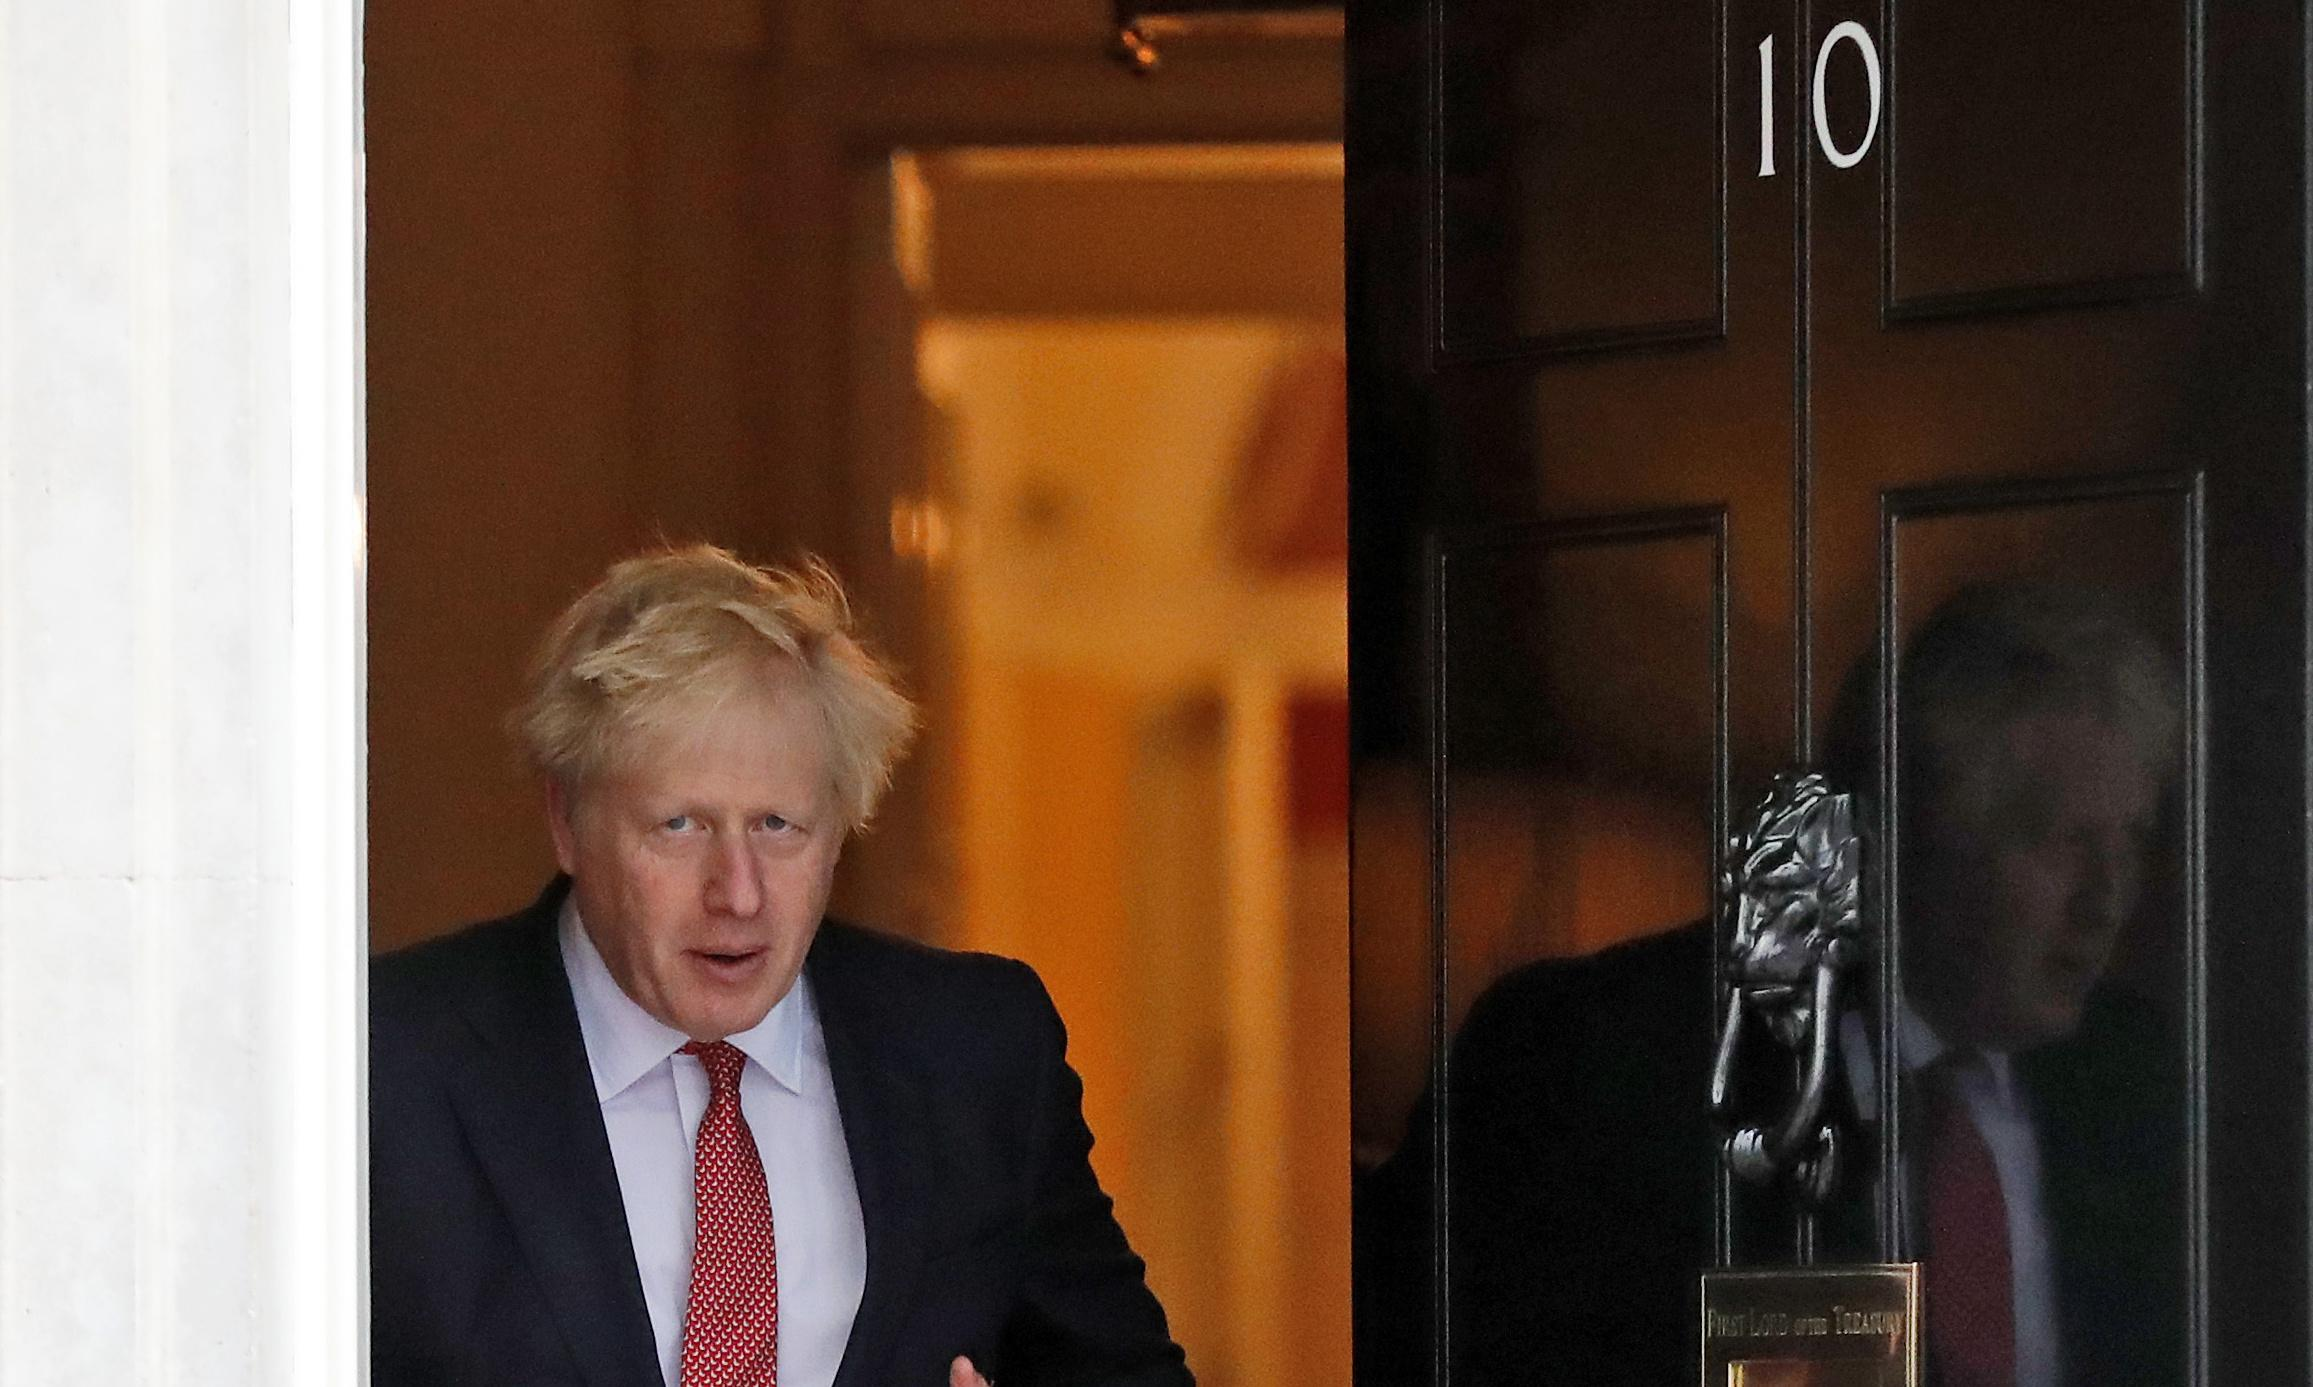 Johnson heads to UN where Brexit will still dominate the agenda